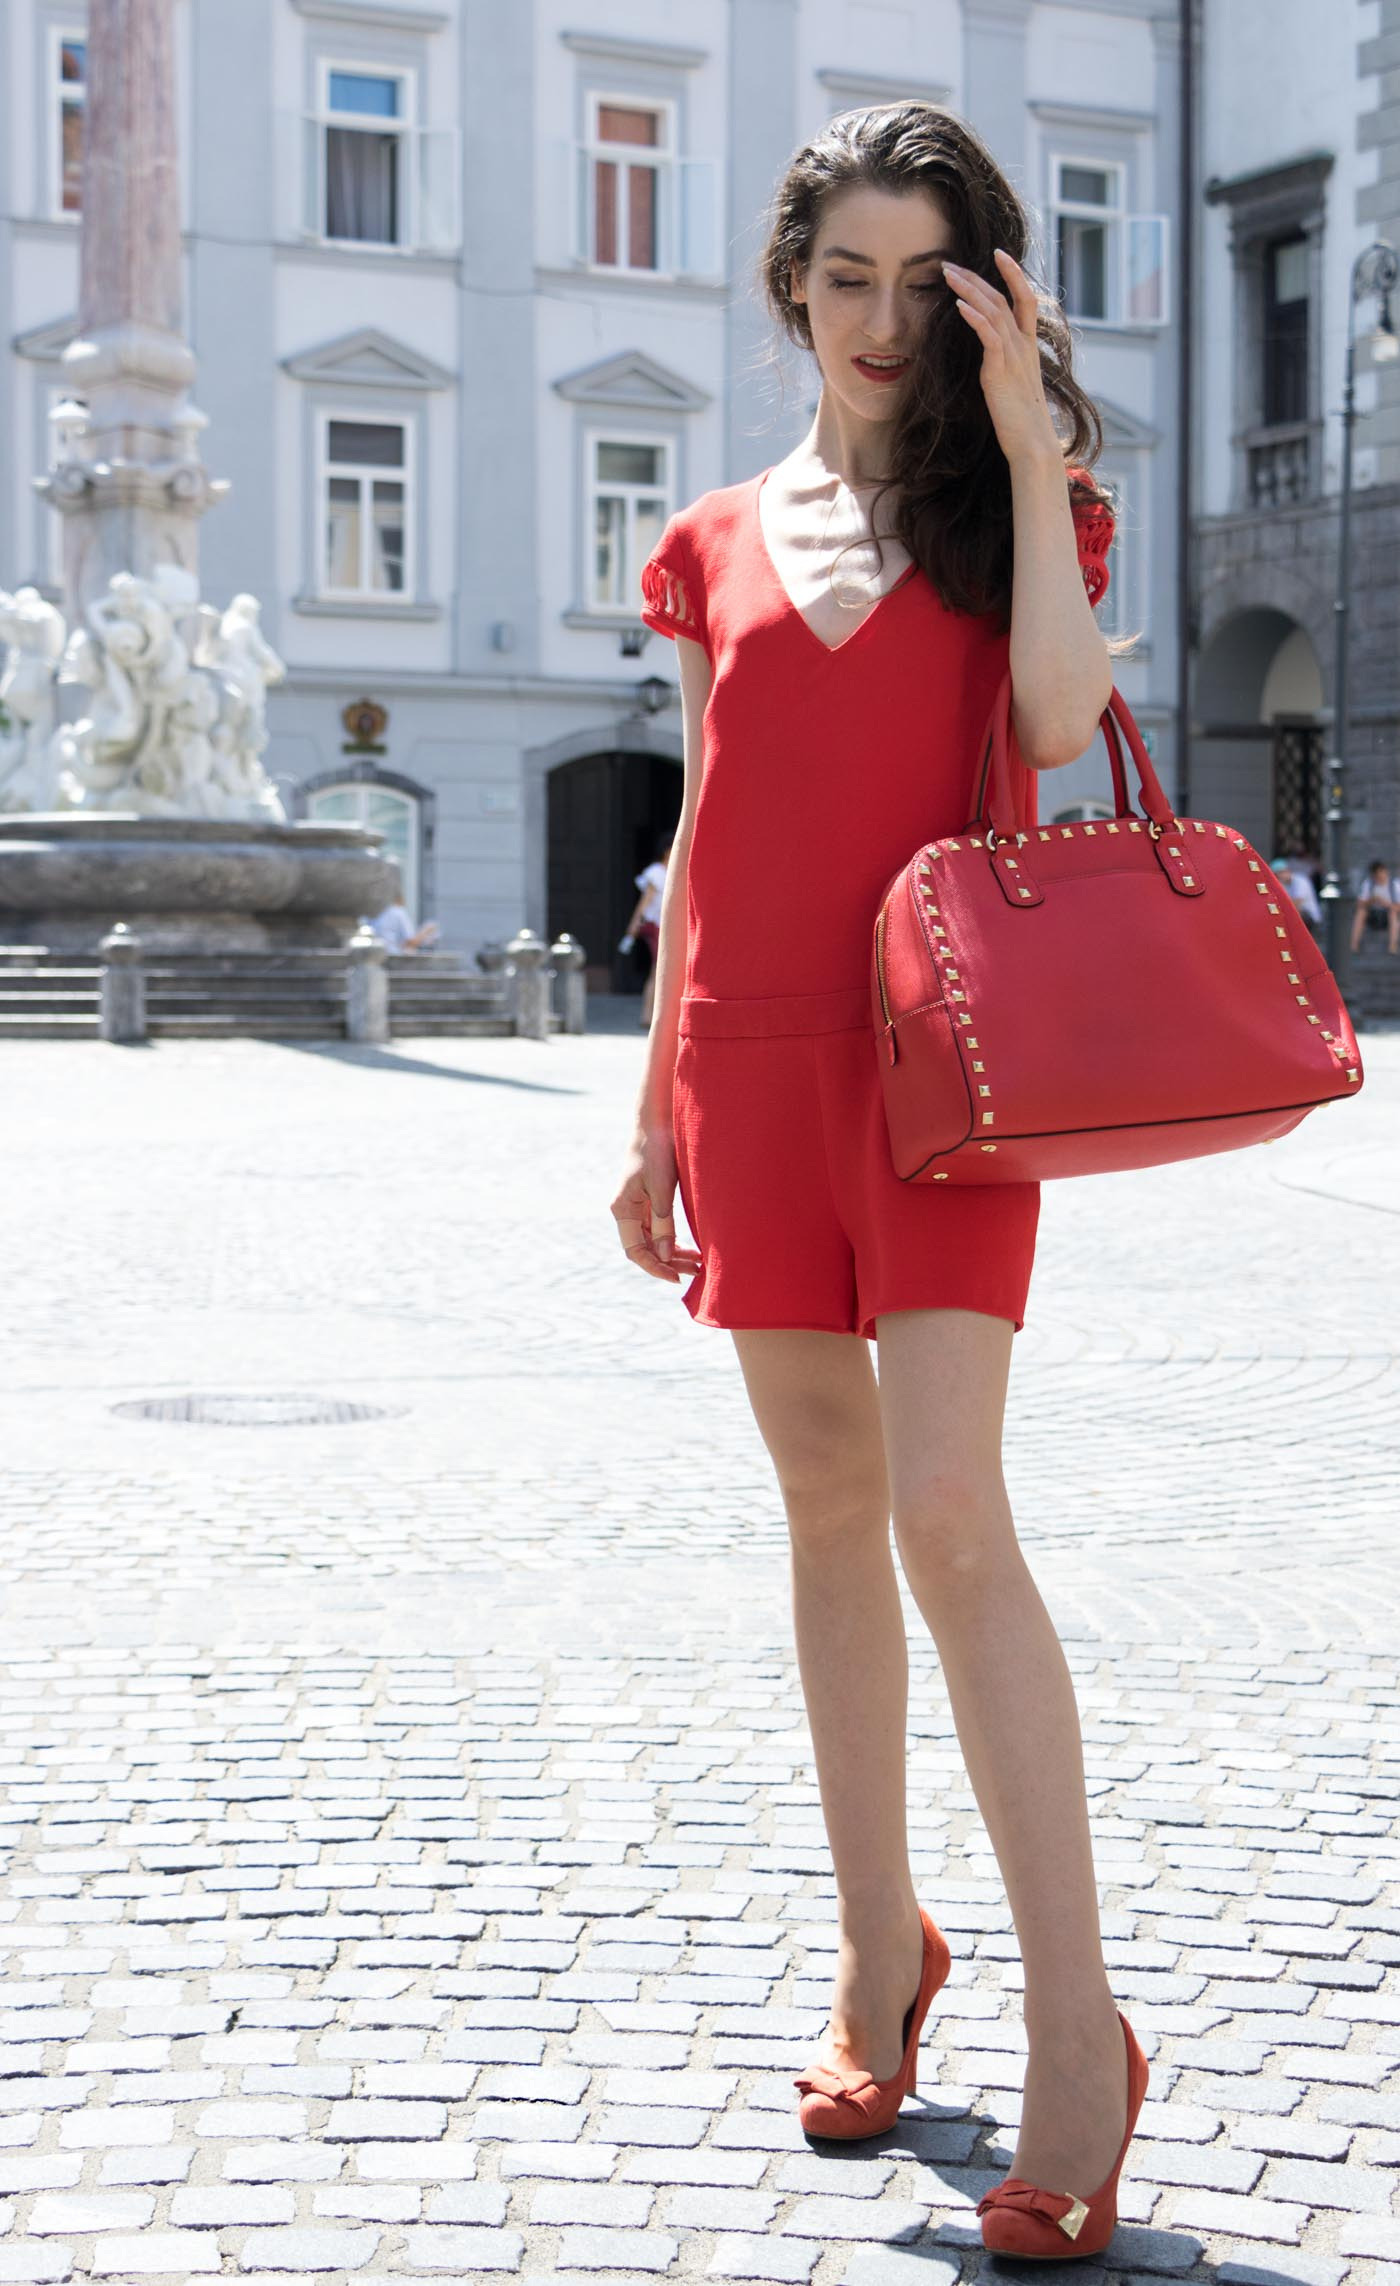 Fashion Blogger Veronika Lipar of Brunette from Wall Street wearing red romper with the open back, red pumps and red Michael Kors tote bag in Ljubljana